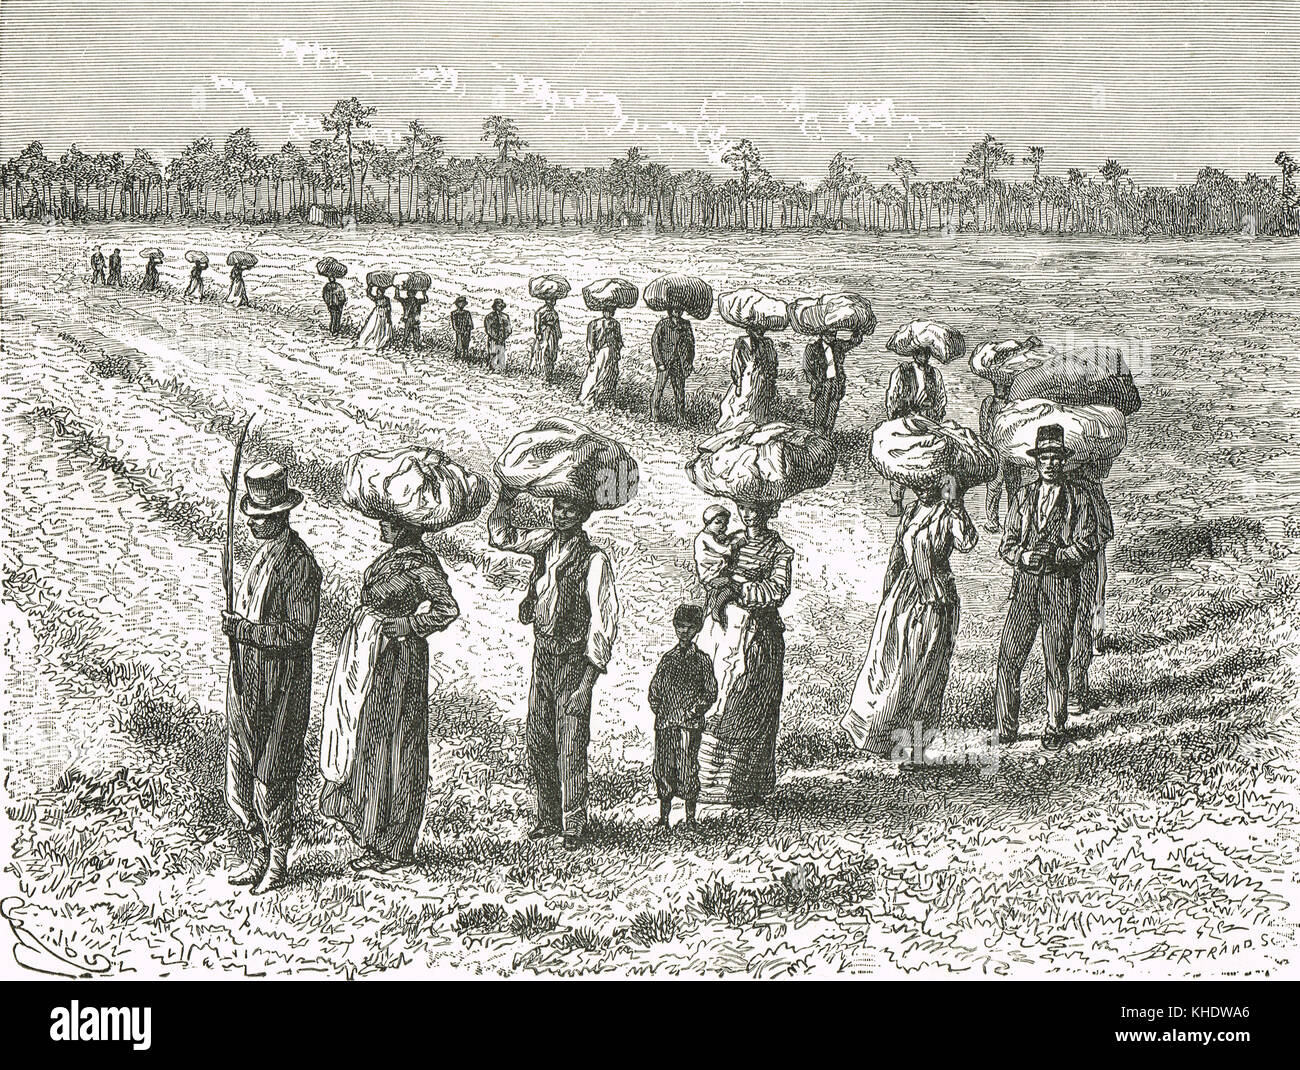 A 19th Century cotton harvest in Georgia, United States - Stock Image